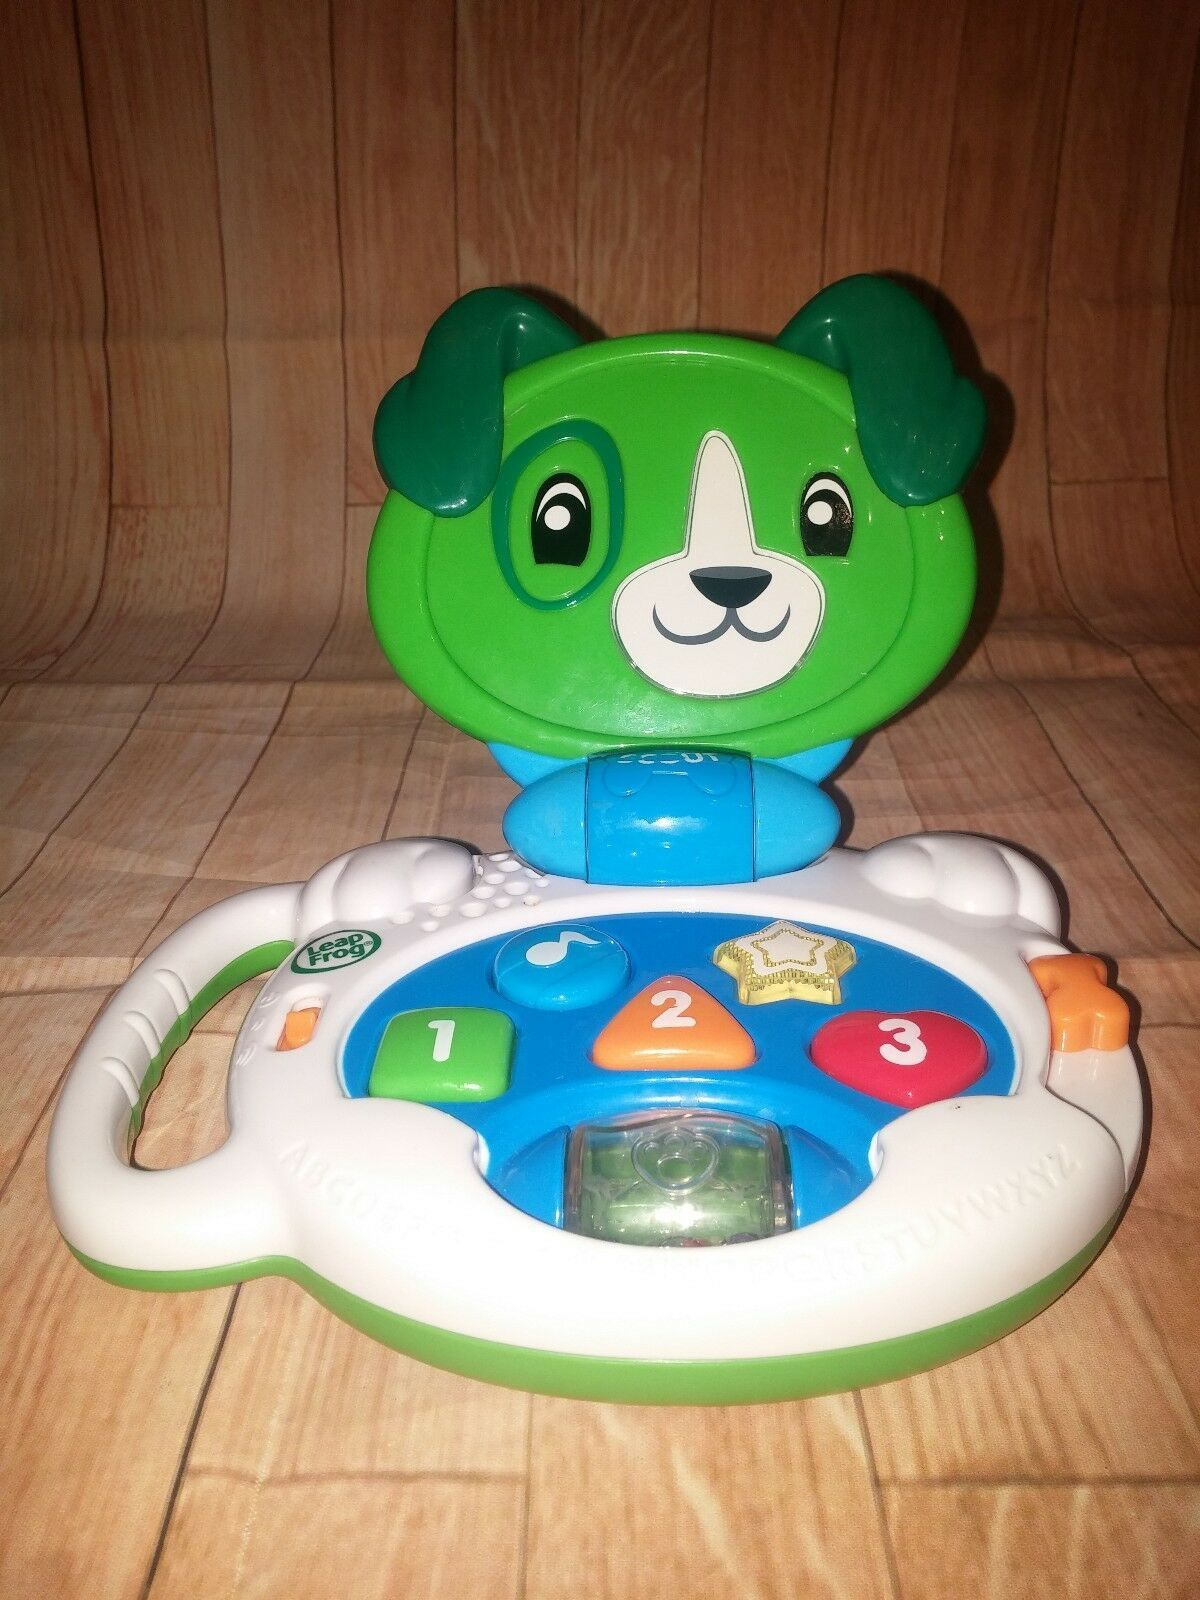 Leapfrog 19197 My Talking Lap up Scout Lively Puppy Pal Baby Toy CLEARANCE - $9.89